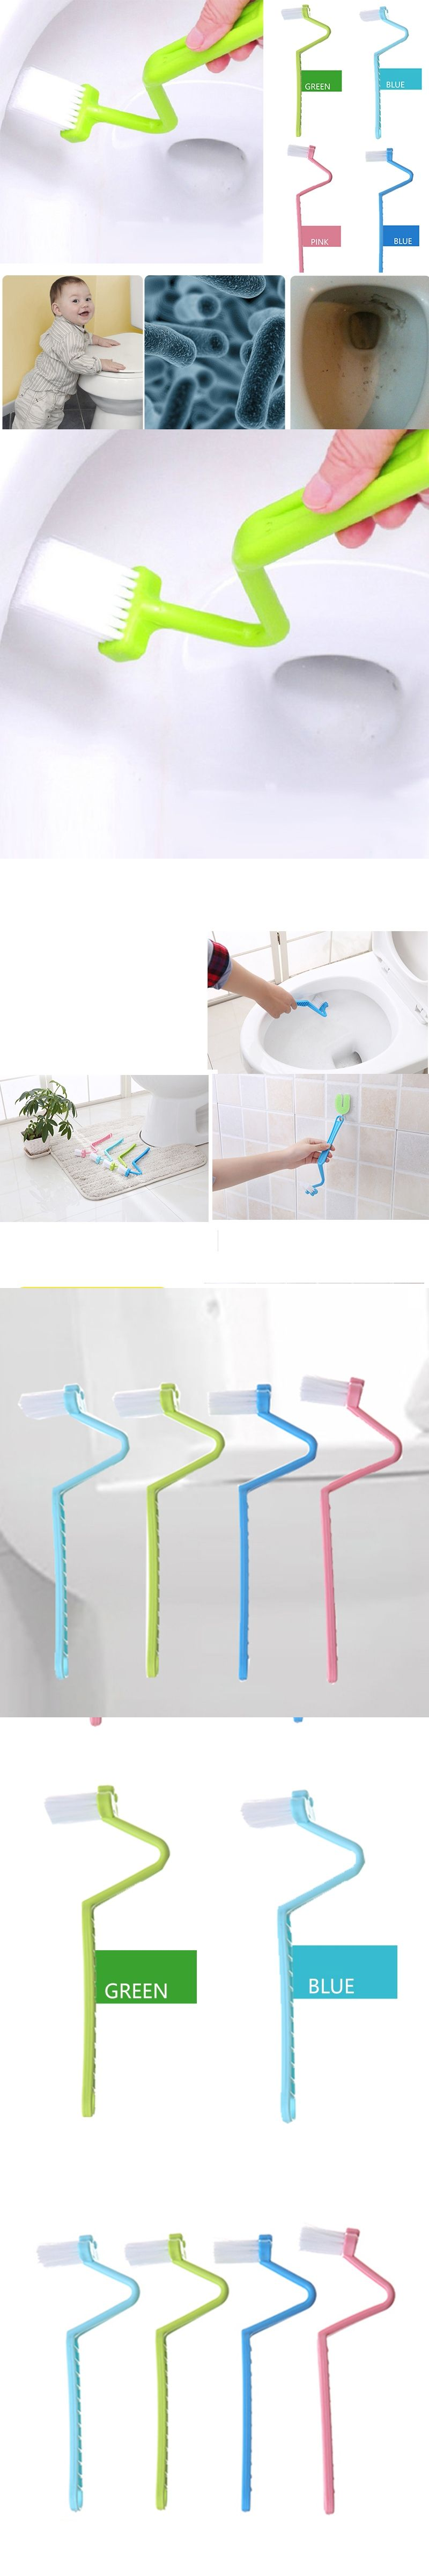 Family sanitary stype toilet cleaning brush curved bent handle